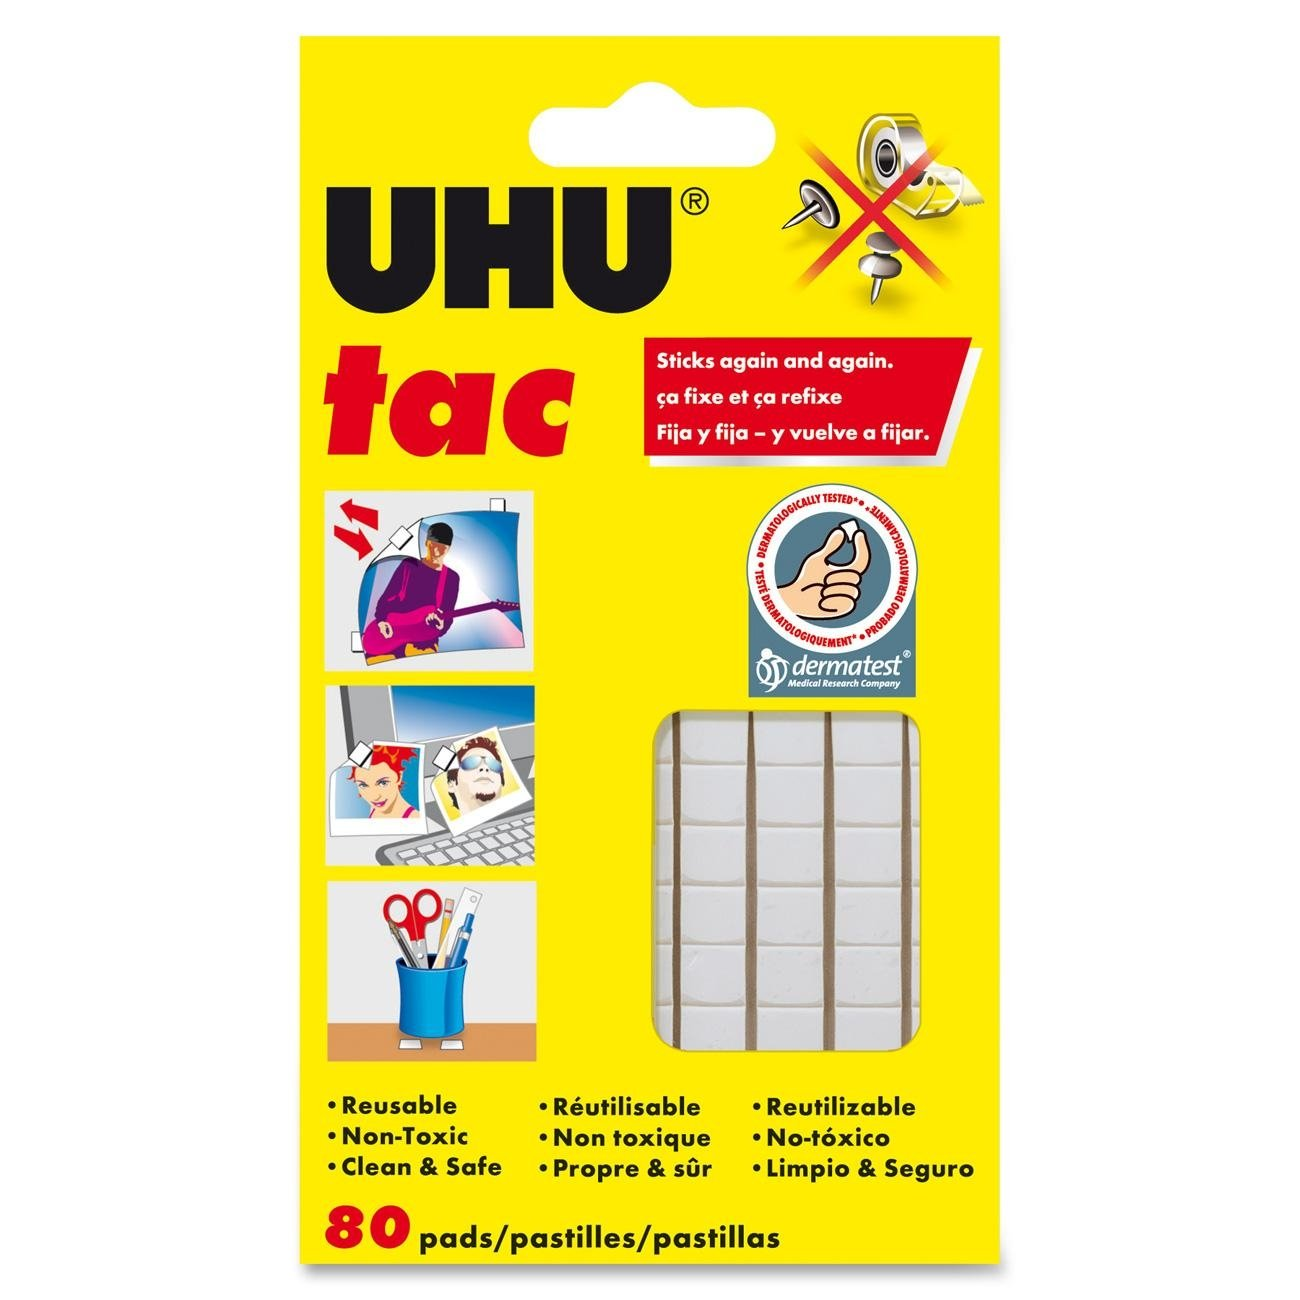 Amazon.com : Saunders UHU Tac Removable Adhesive Putty Tabs - Non Toxic  Tape Dry Adhesive for Eliminating Frequent Repairing Requirements.